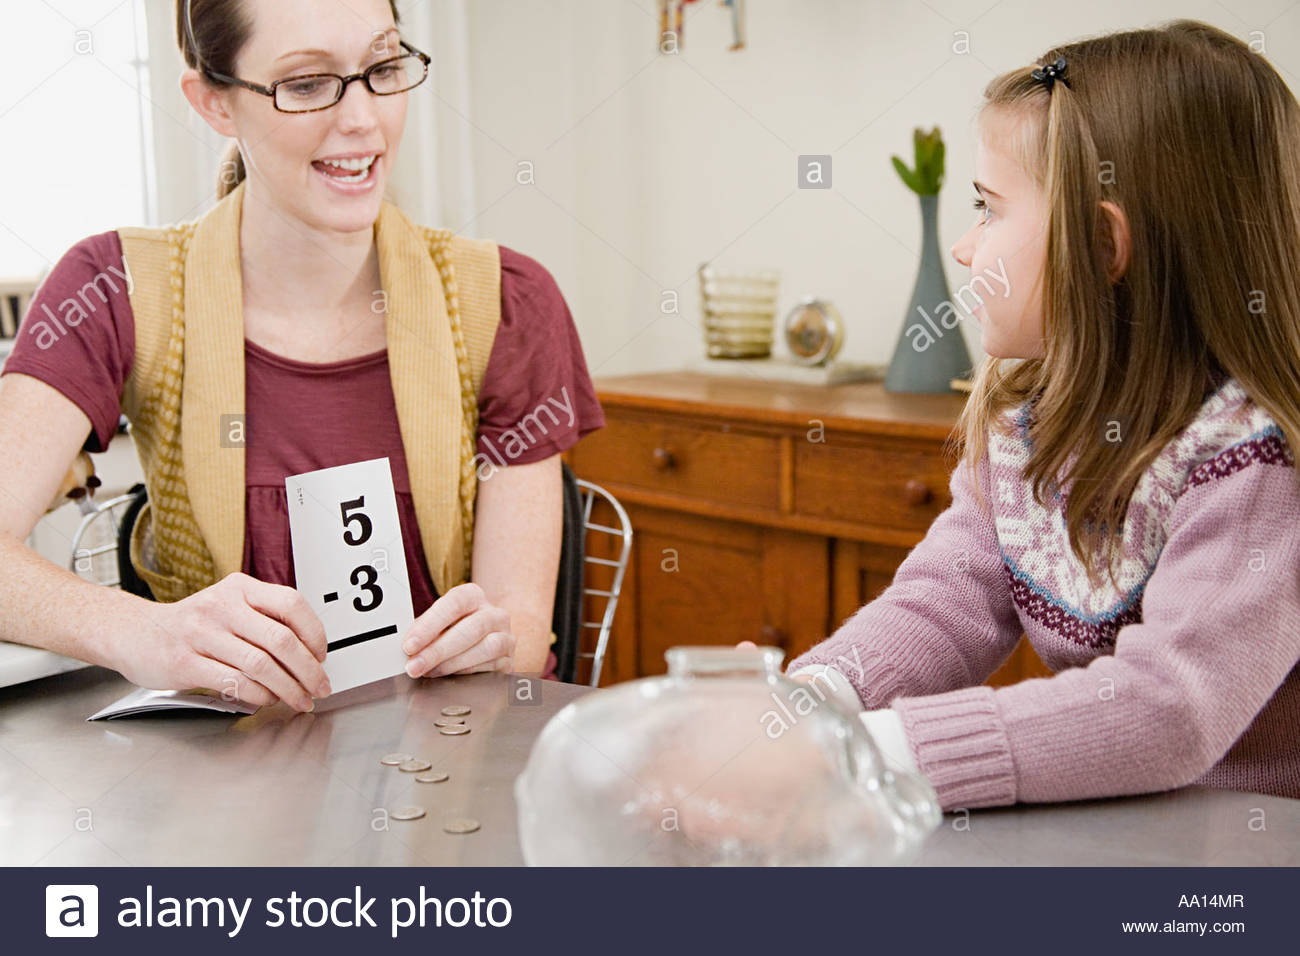 Mother helping daughter with mathematics - Stock Image